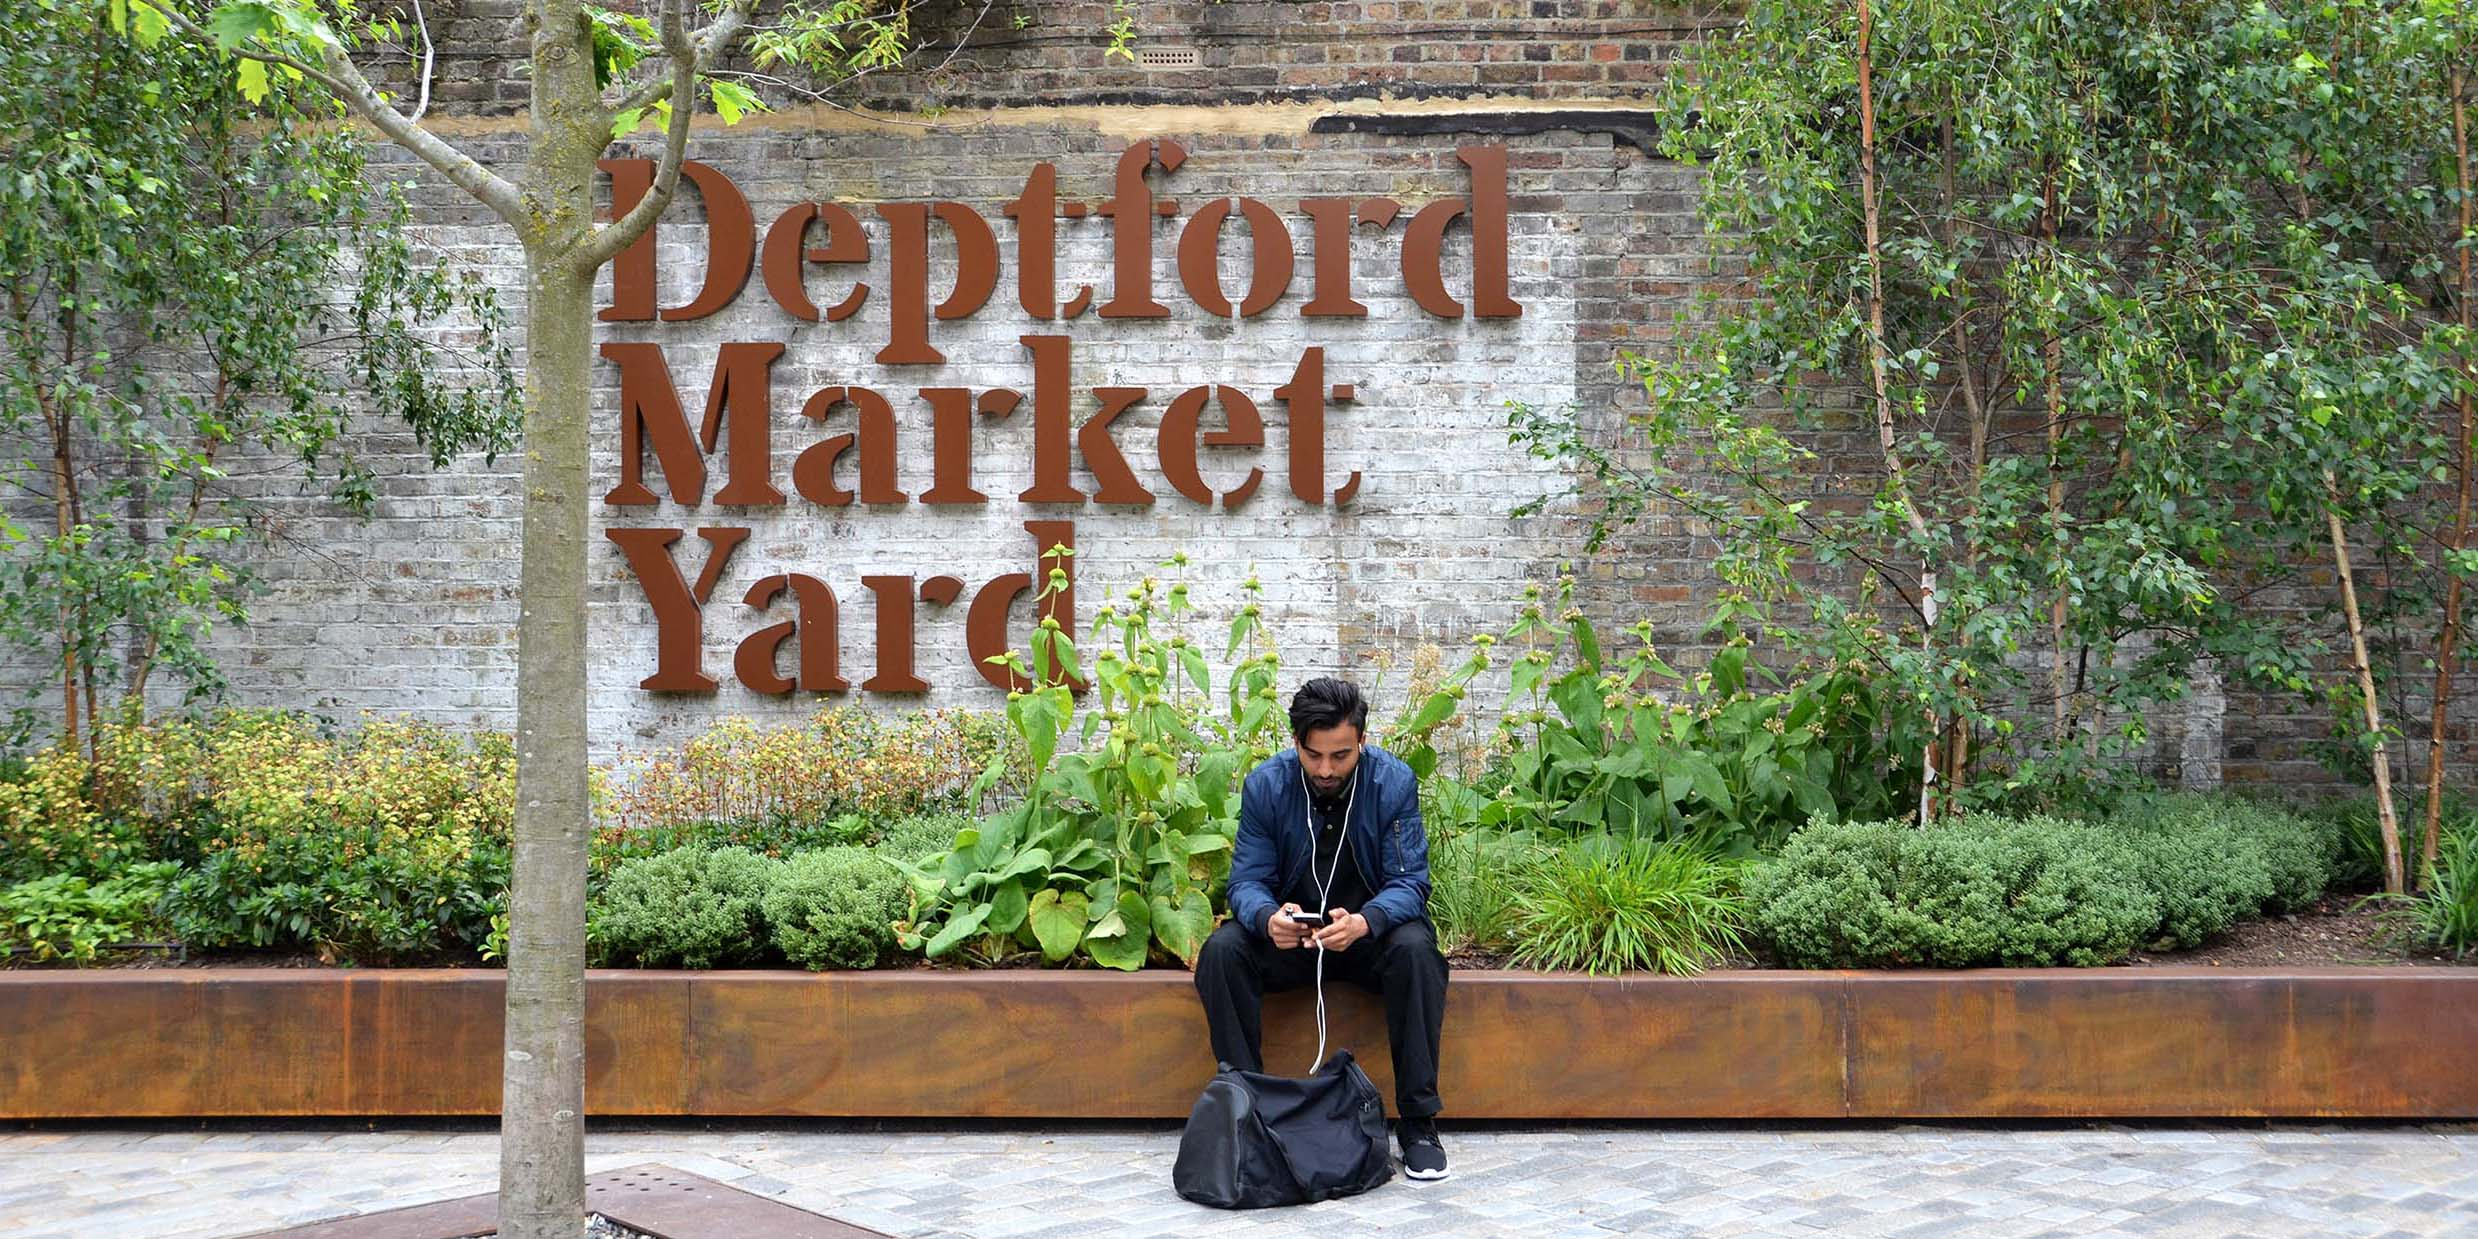 Deptford Market Yard Lewisham, London